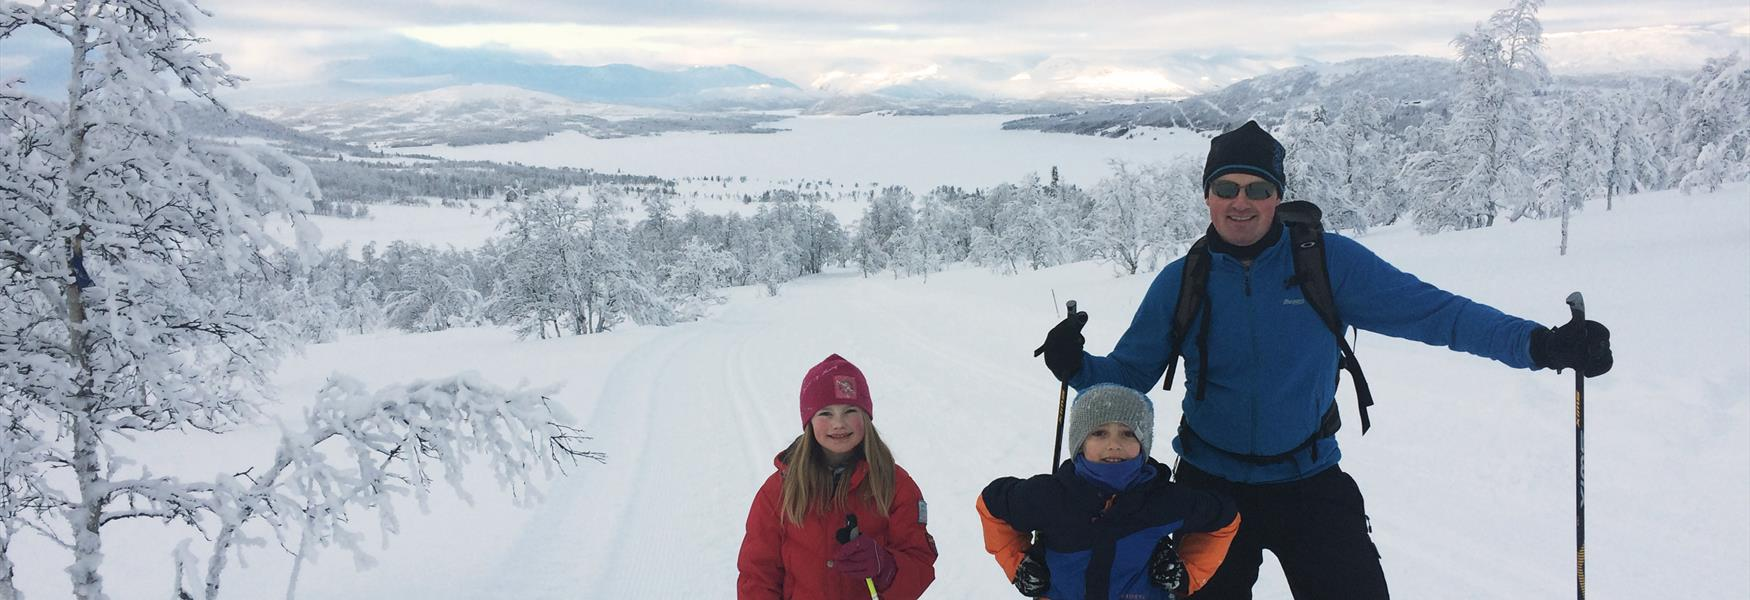 The feeling of winter in Telemark